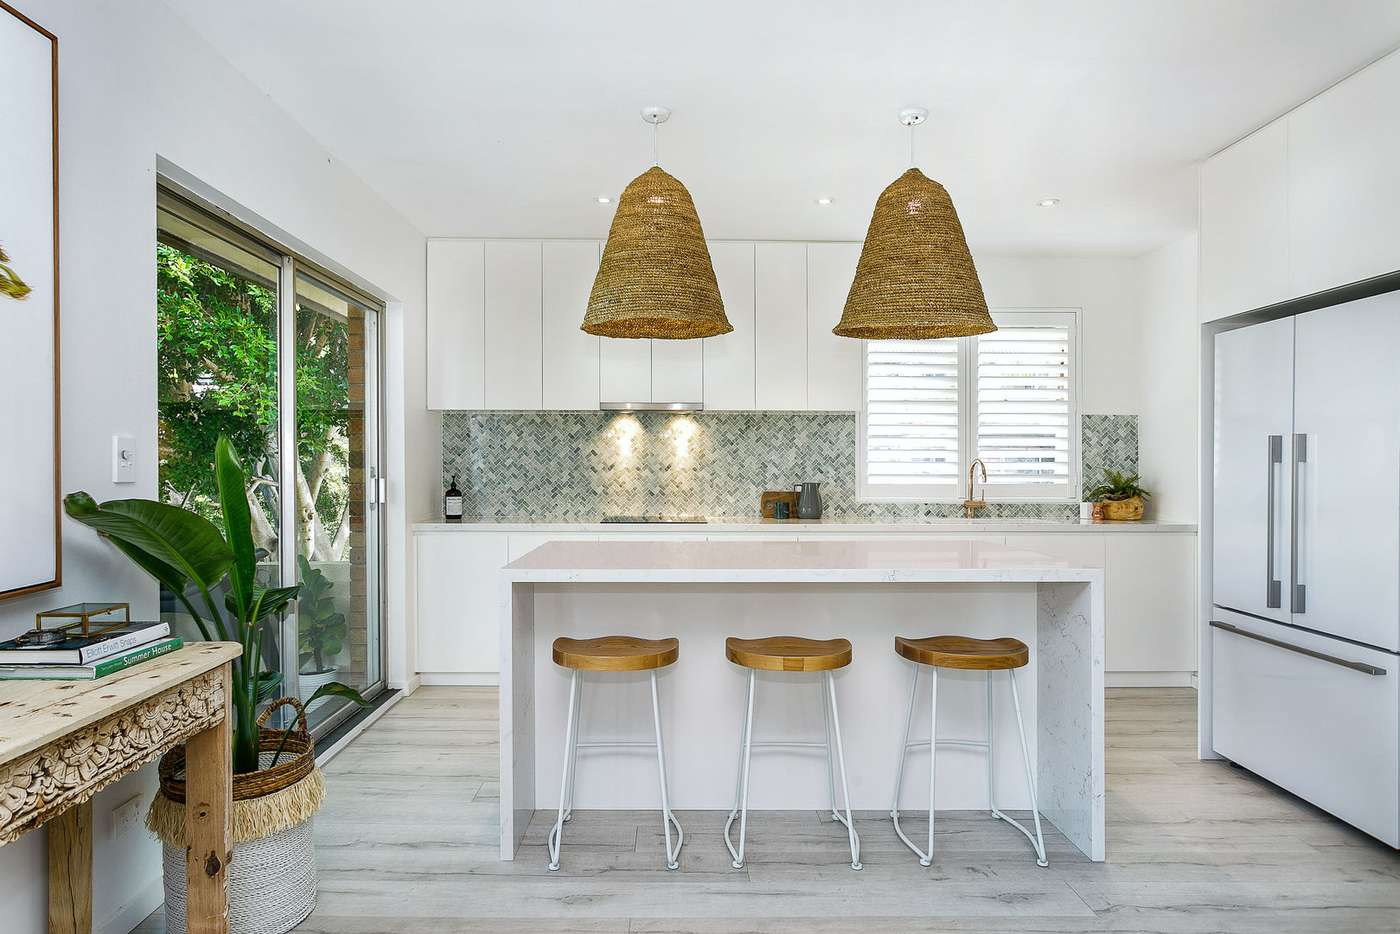 Main view of Homely apartment listing, 5/5 Jenkins Street, Collaroy NSW 2097